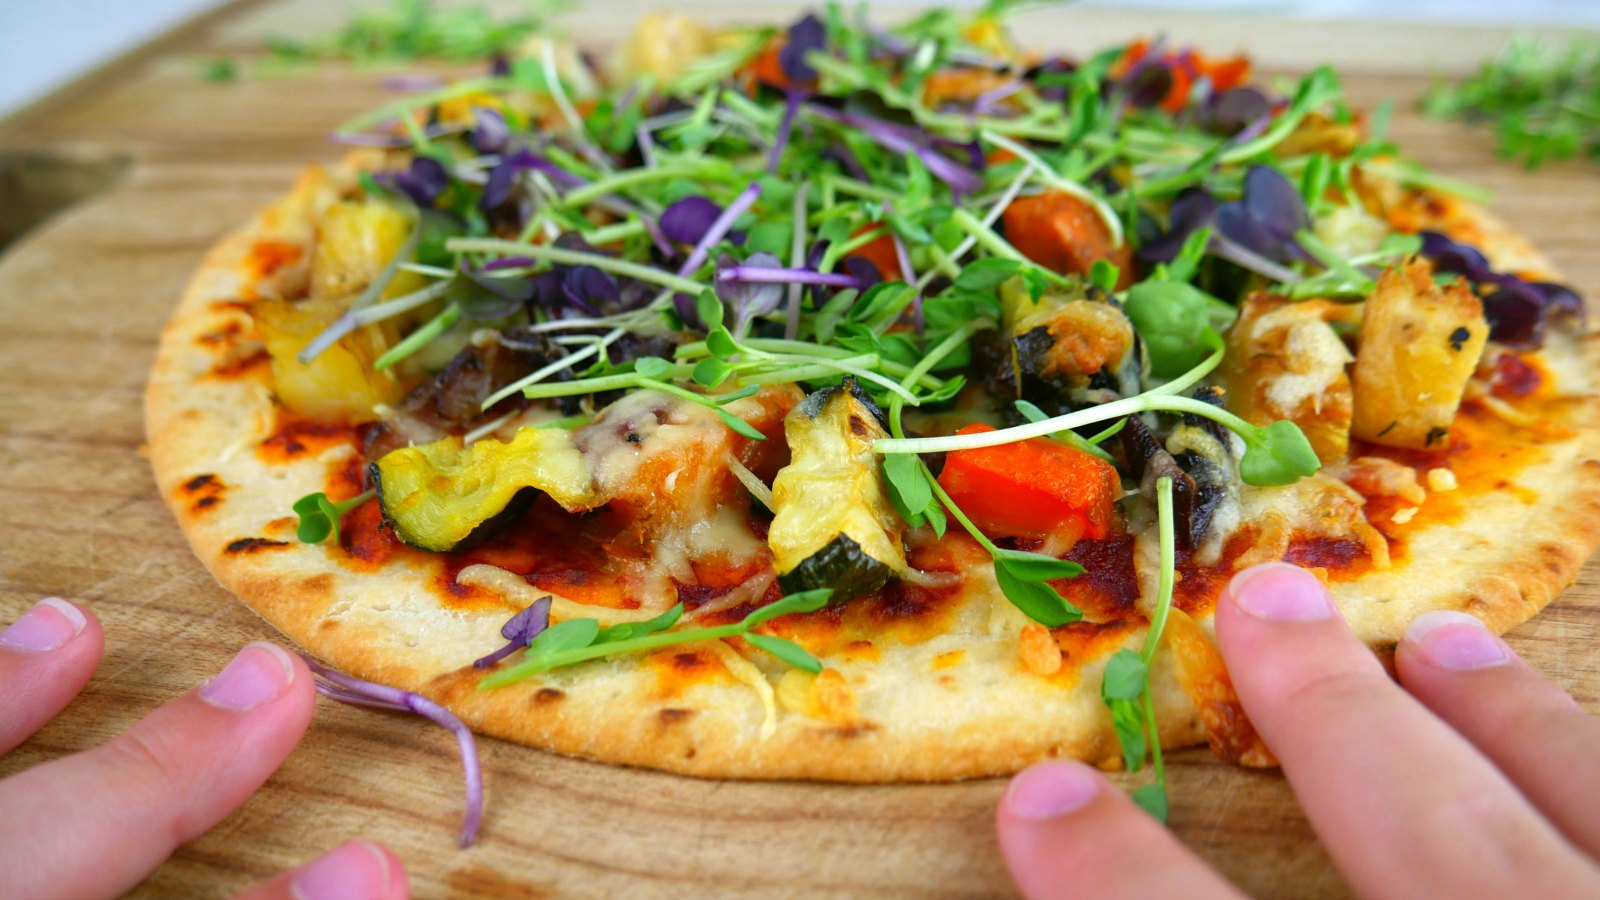 Microgreens Kit - microgreens pizza finished